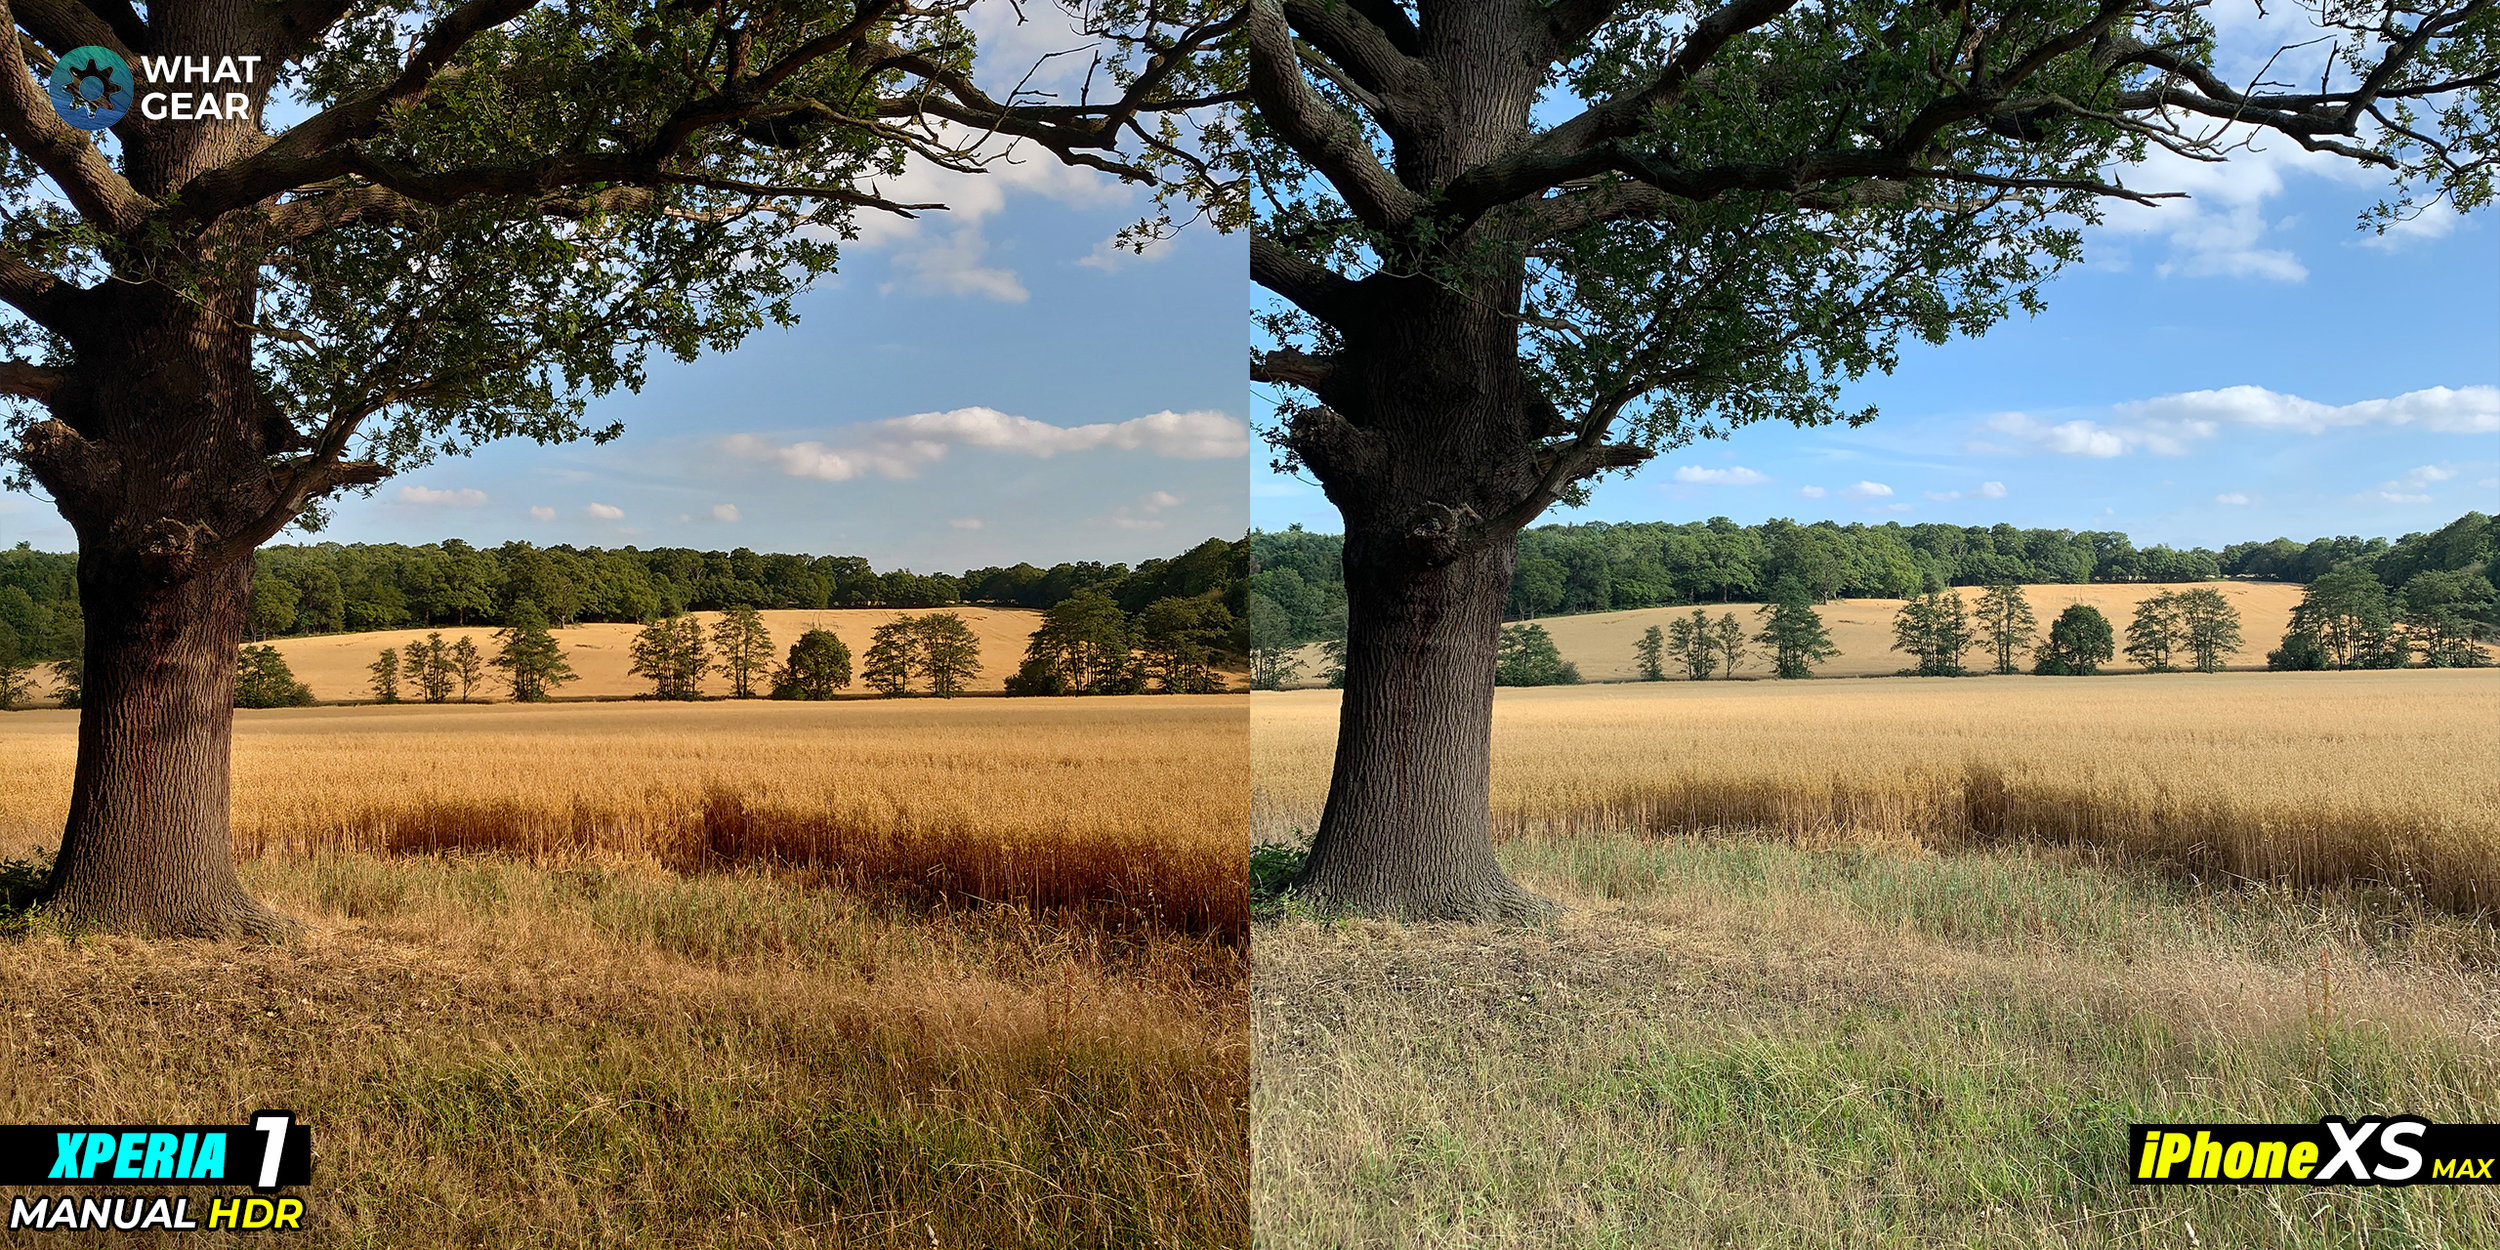 xperia 1 vs iphone xs camera 3.jpg